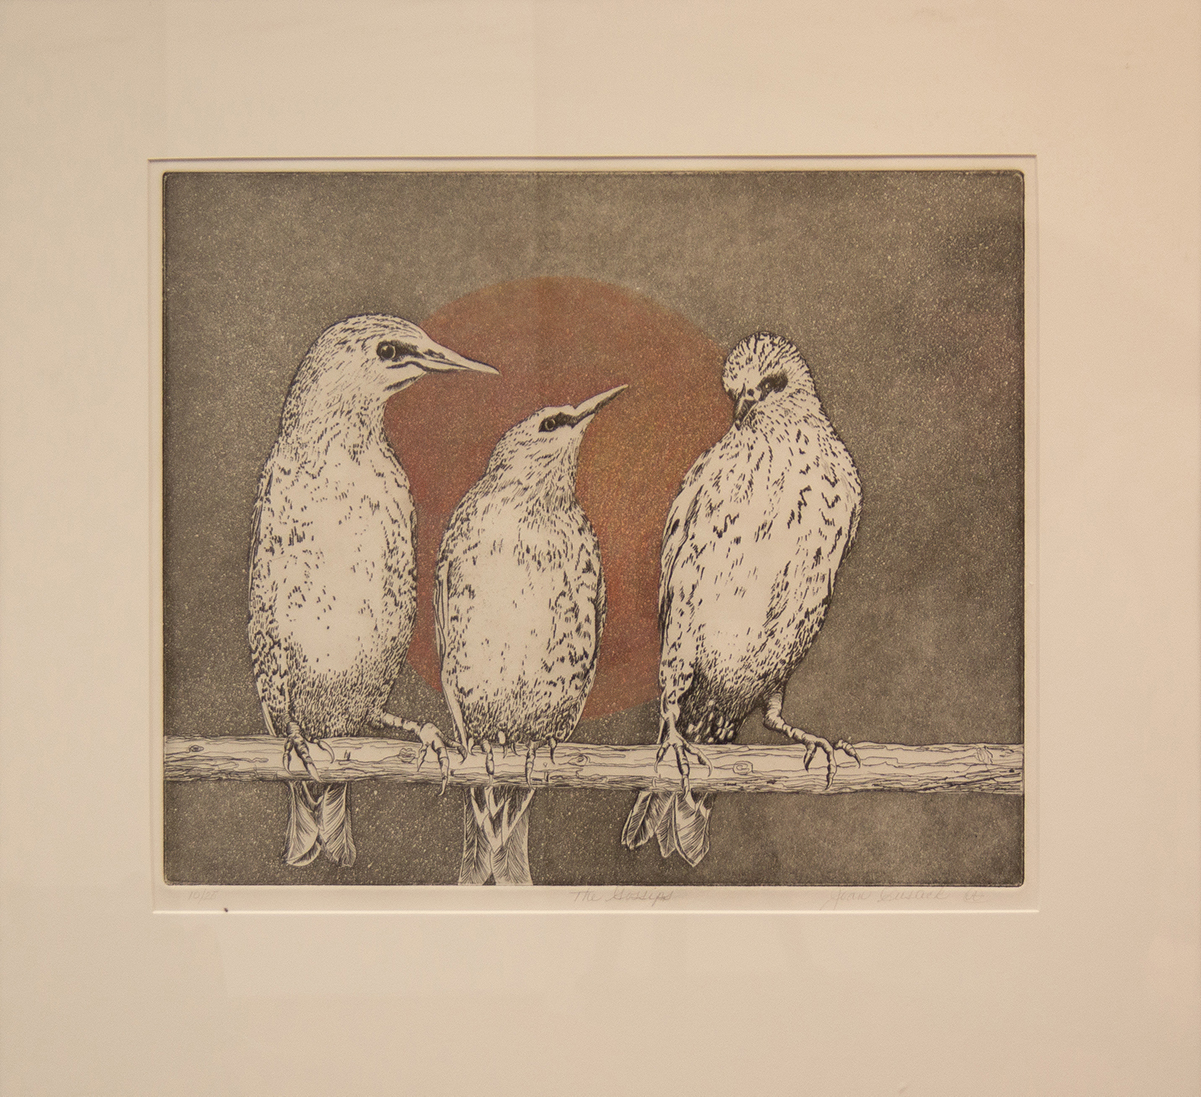 silk screen of three birds perched on a branch